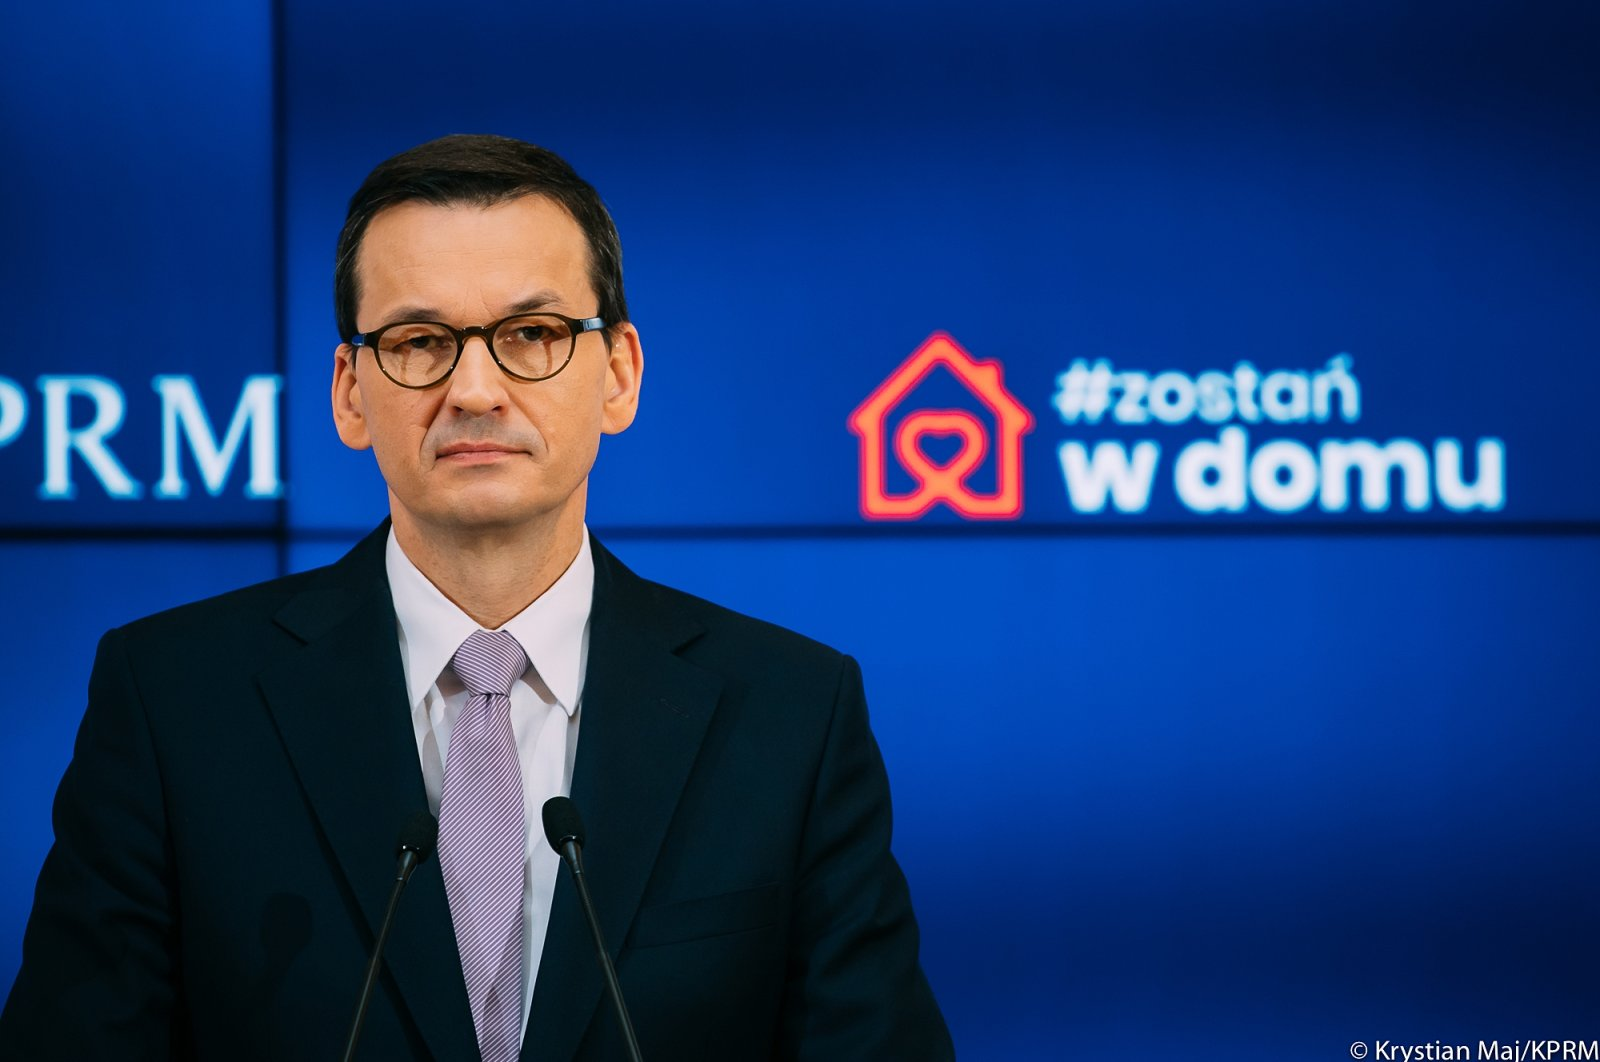 Polish Prime Minister Mateusz Morawiecki attends a conference in Warsaw, Poland, April 9, 2020. (Courtesy ofthe Consulate General of the Republic of Poland in Istanbul)